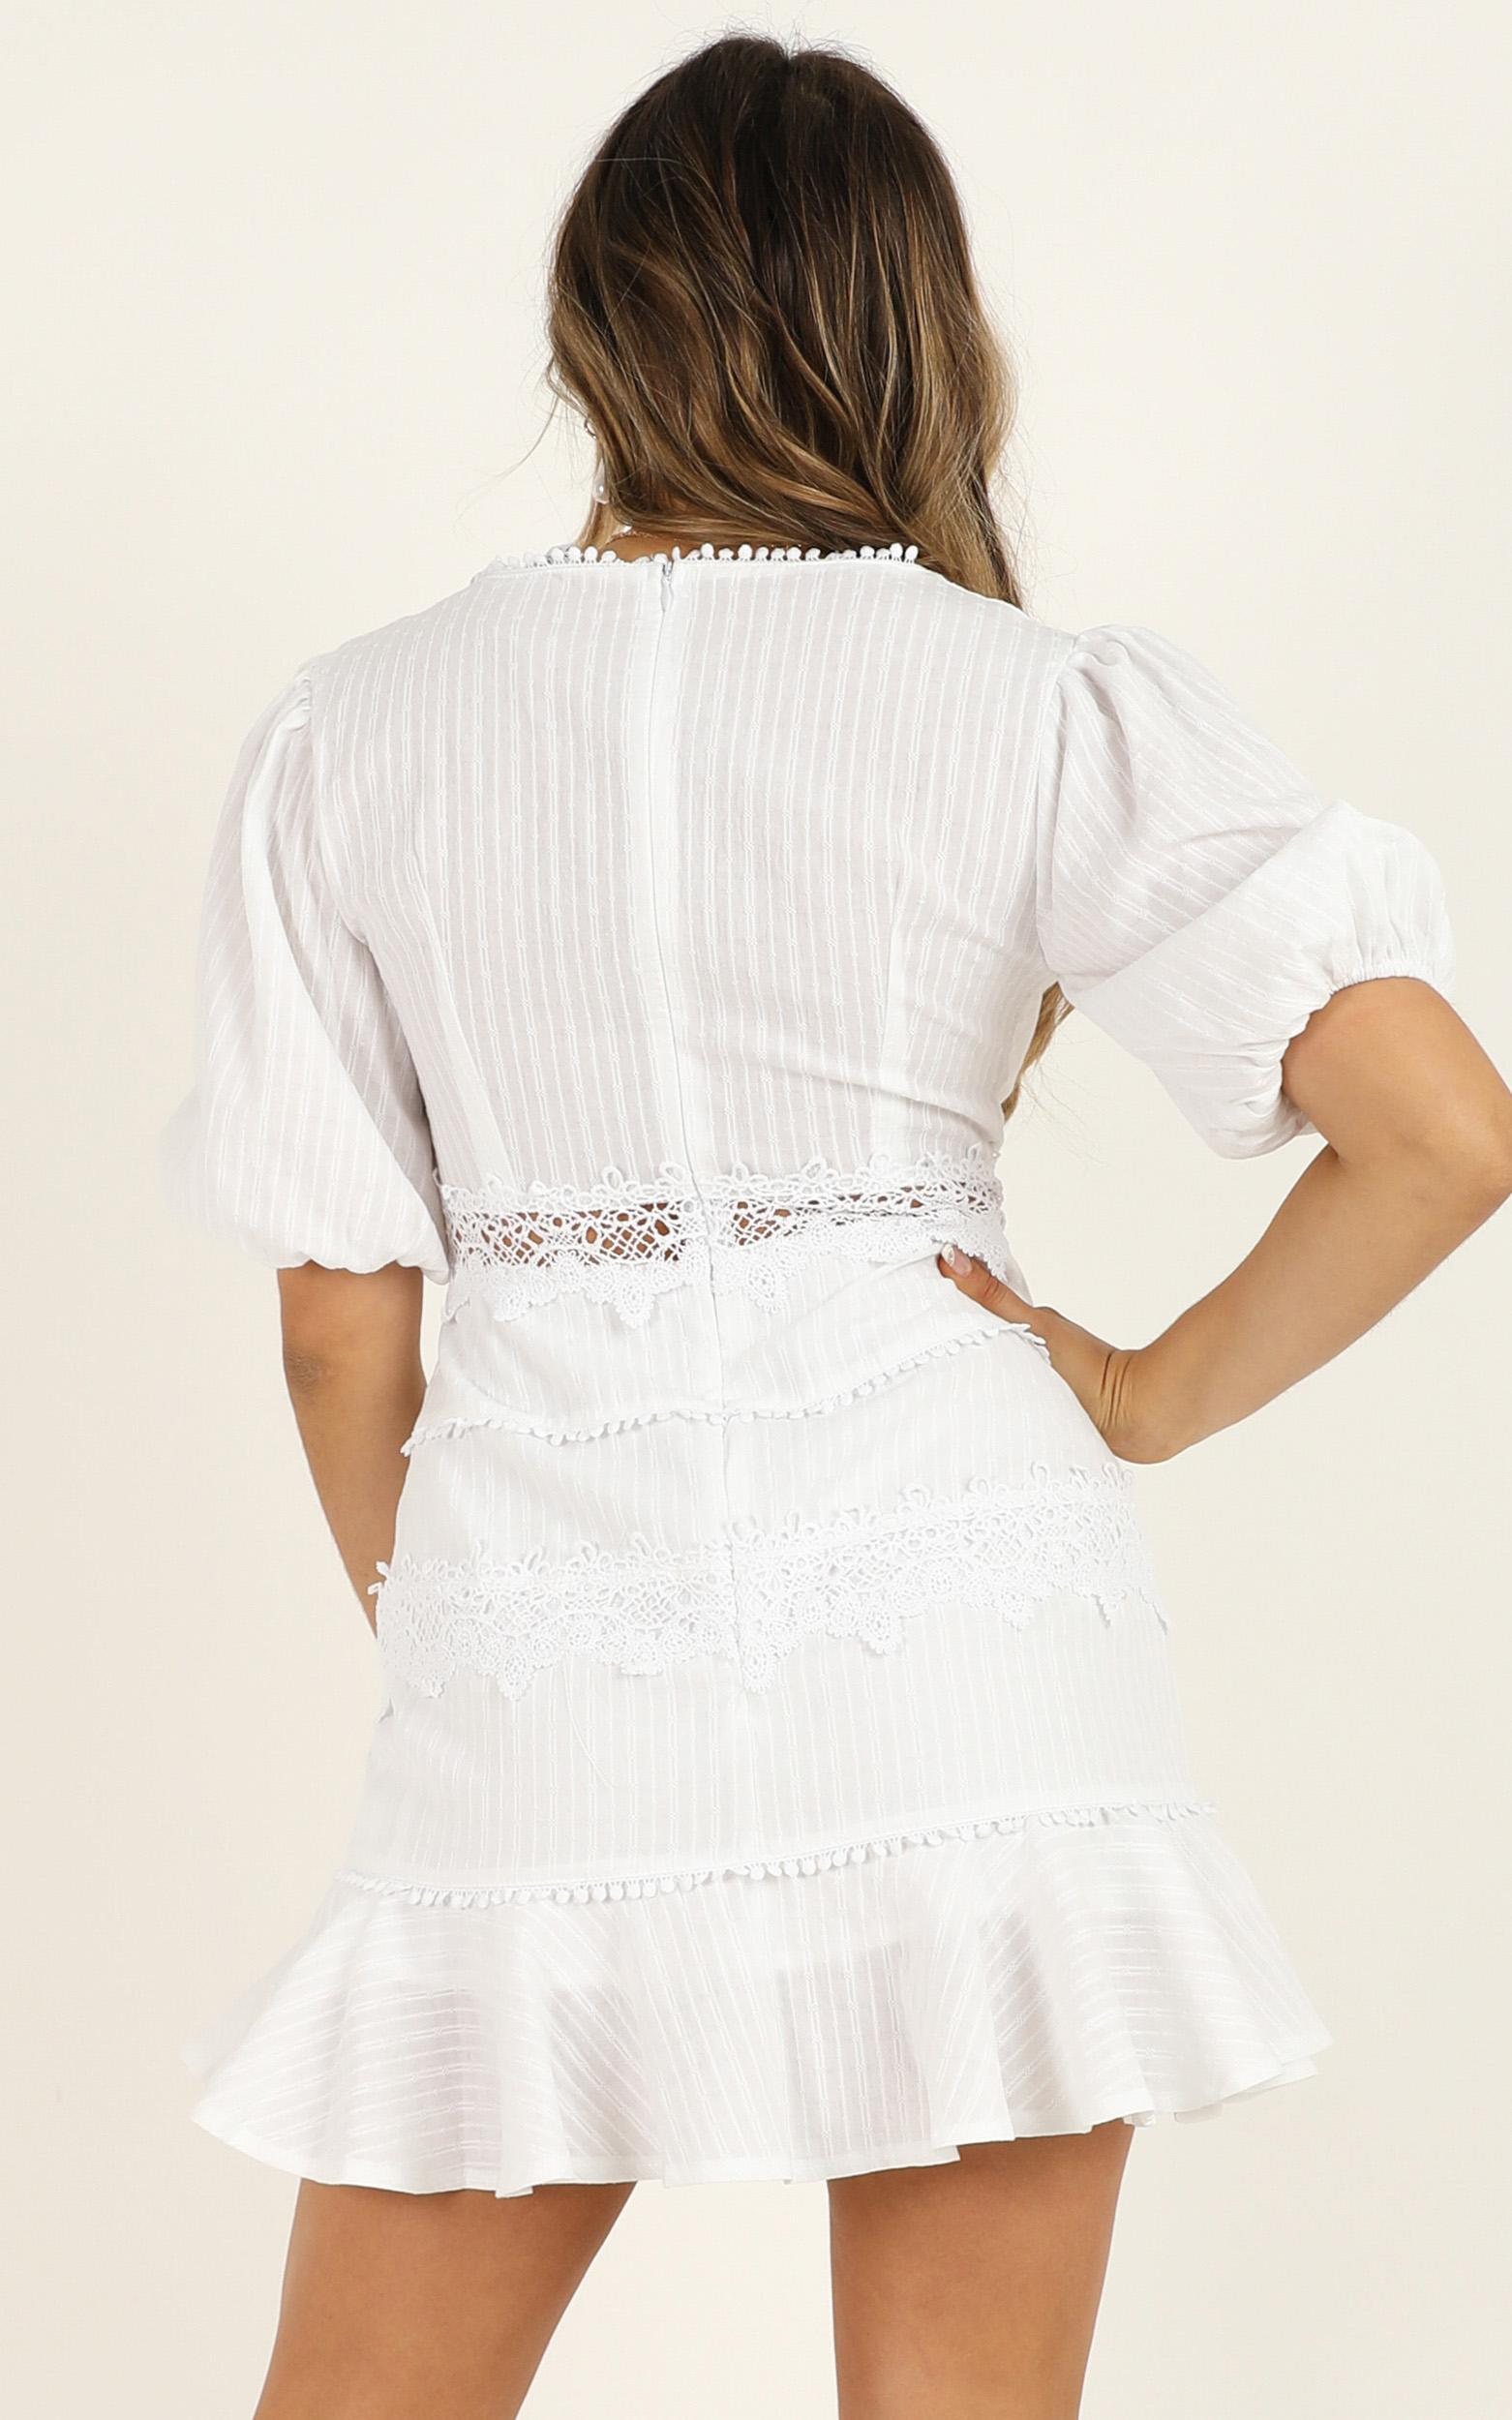 Grand Gesture dress in white - 14 (XL), White, hi-res image number null